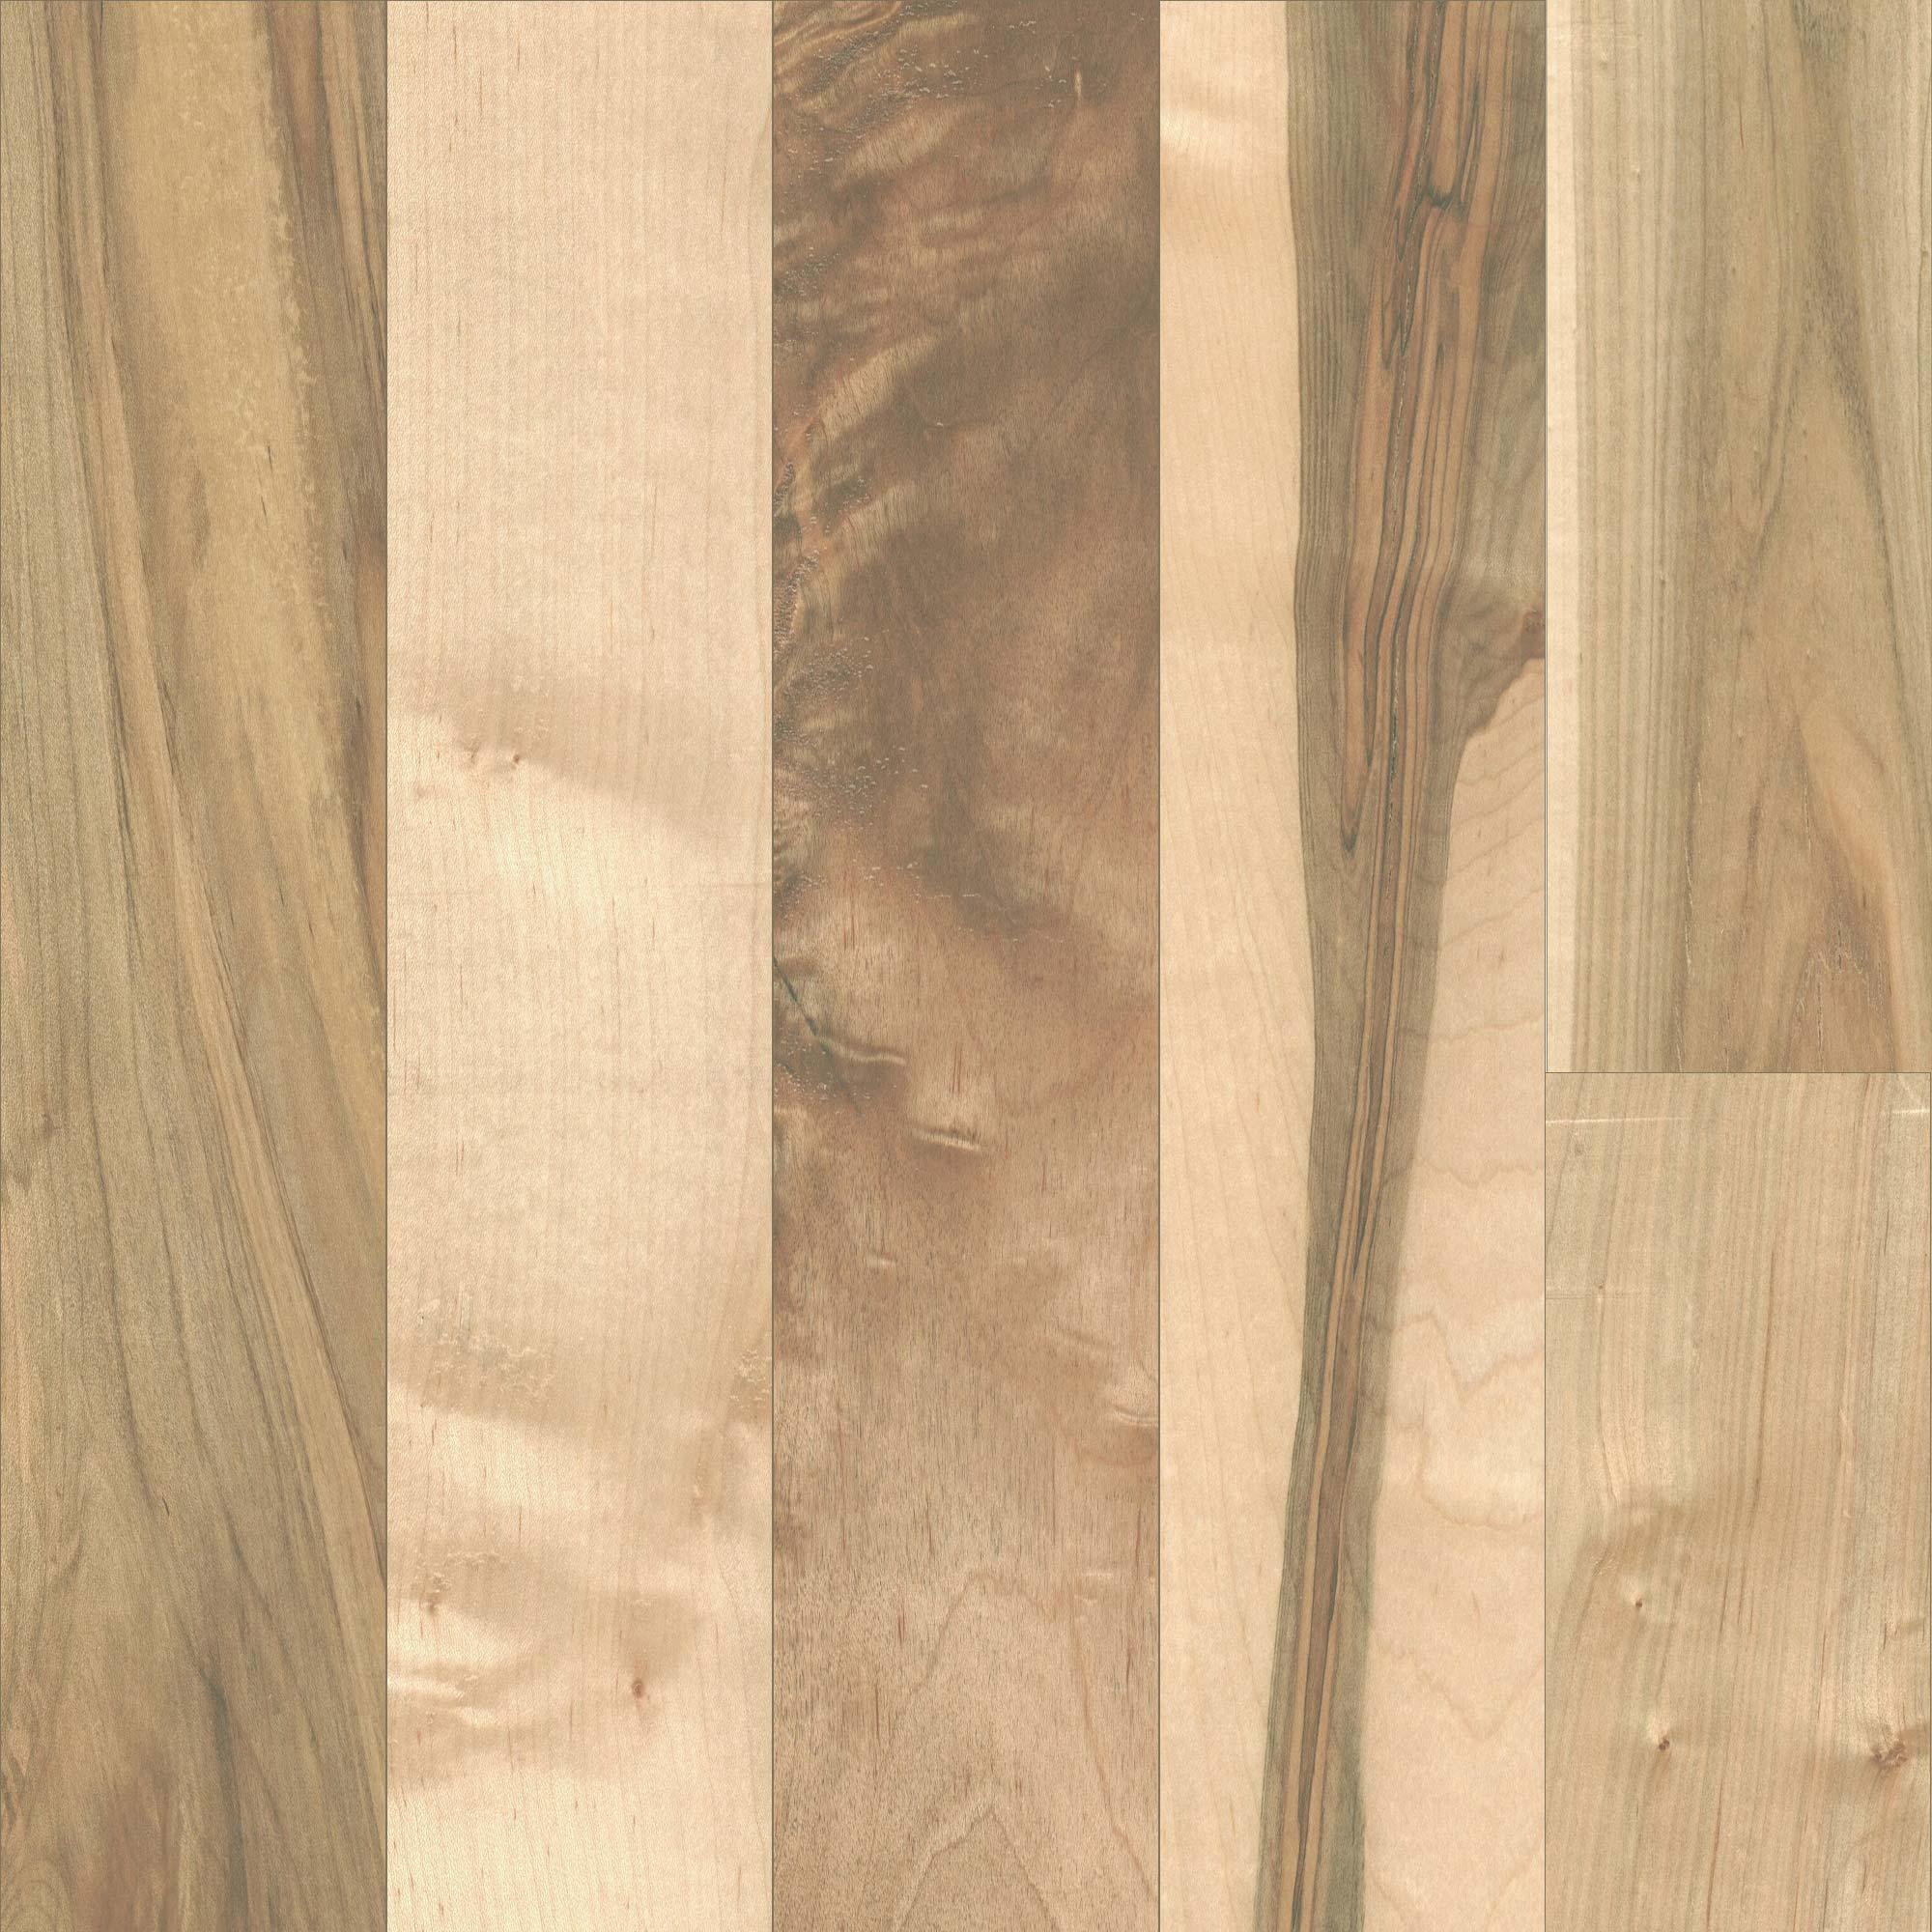 3 4 inch hardwood flooring cost of kingsmill natural maple 4 wide 3 4 solid hardwood flooring intended for natural maple m unat4 4 x 36 approved